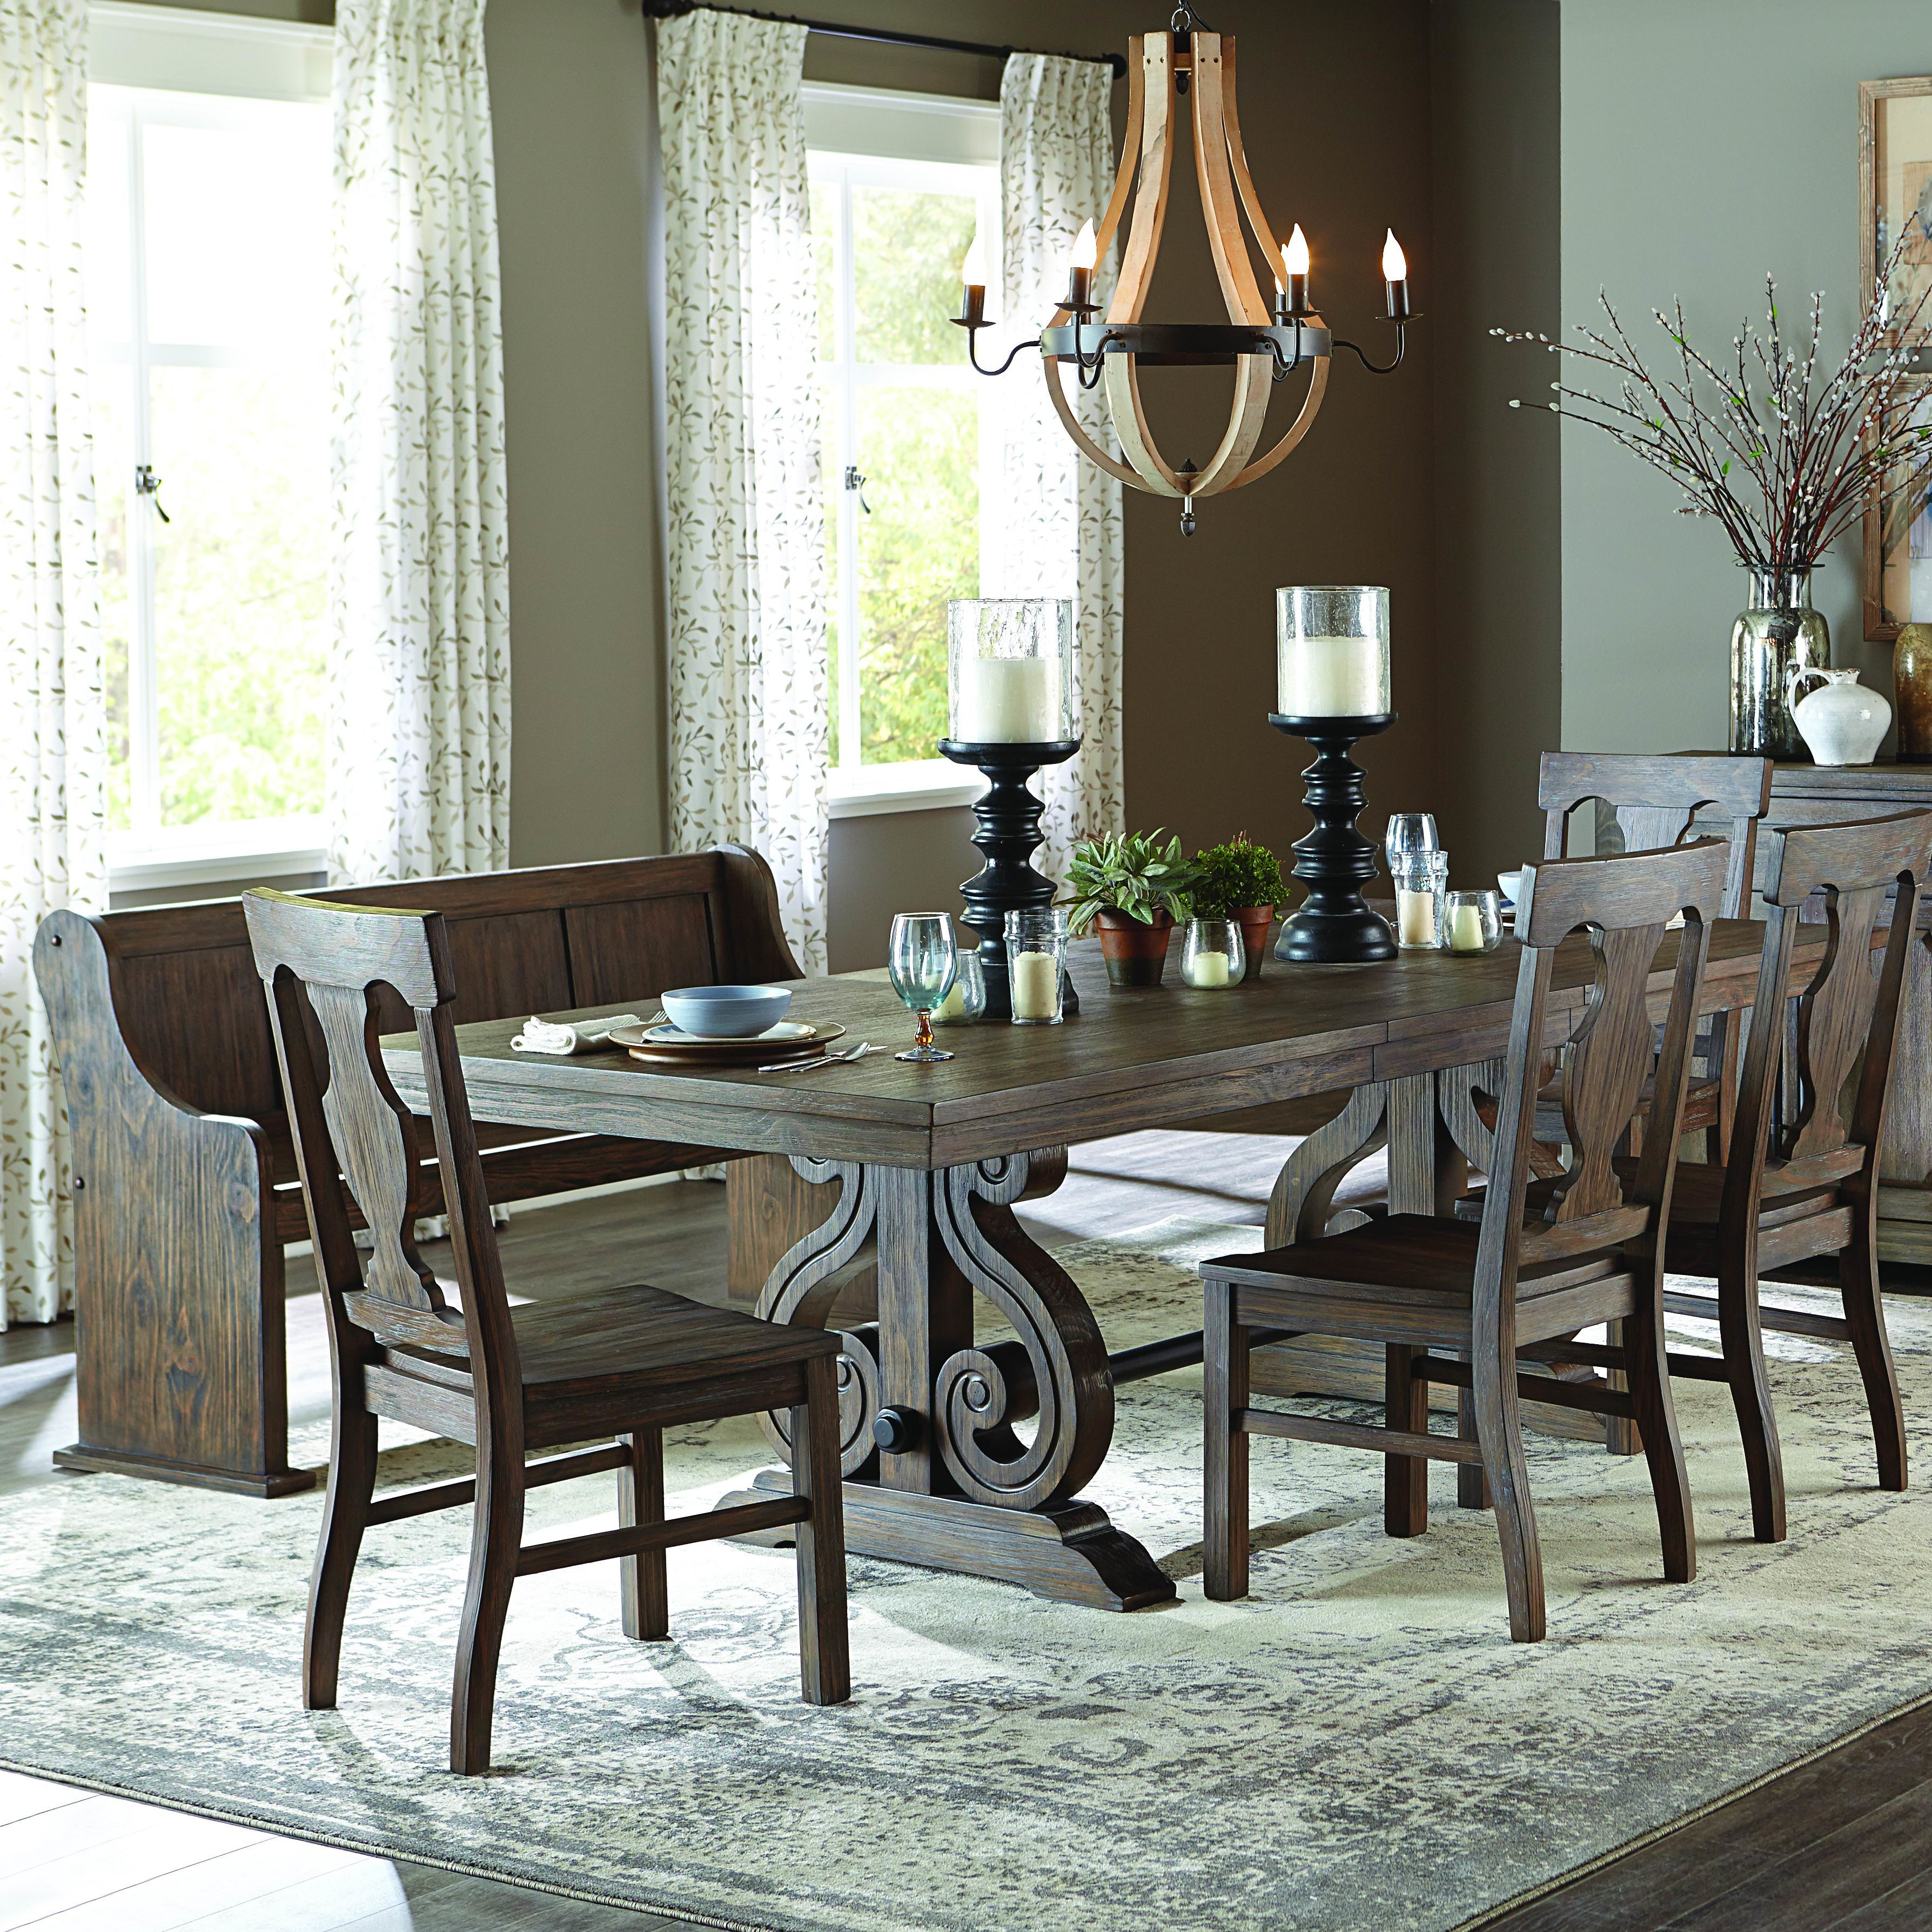 Darby Home Co Phyllis 6 Piece Extendable Dining Set With Regard To Best And Newest Nutter 3 Piece Dining Sets (Image 9 of 20)